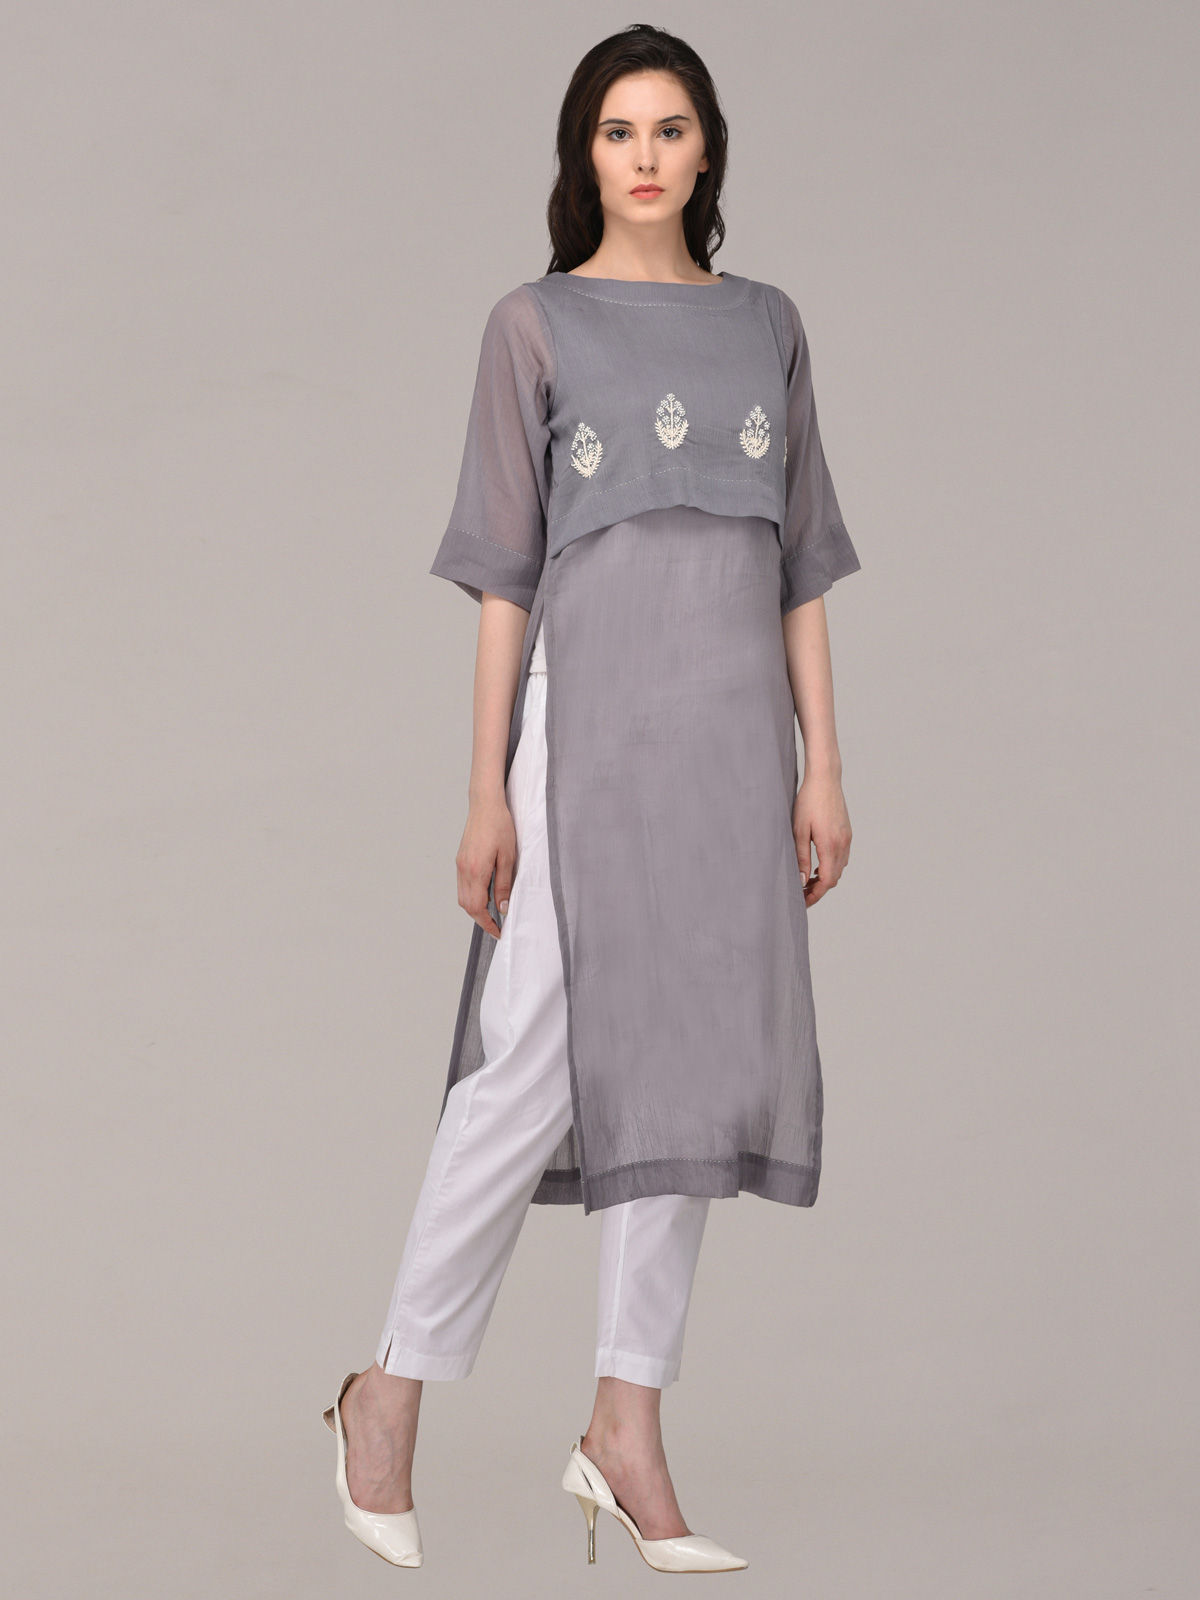 Panachee hand embroidered grey pure cotton kurti